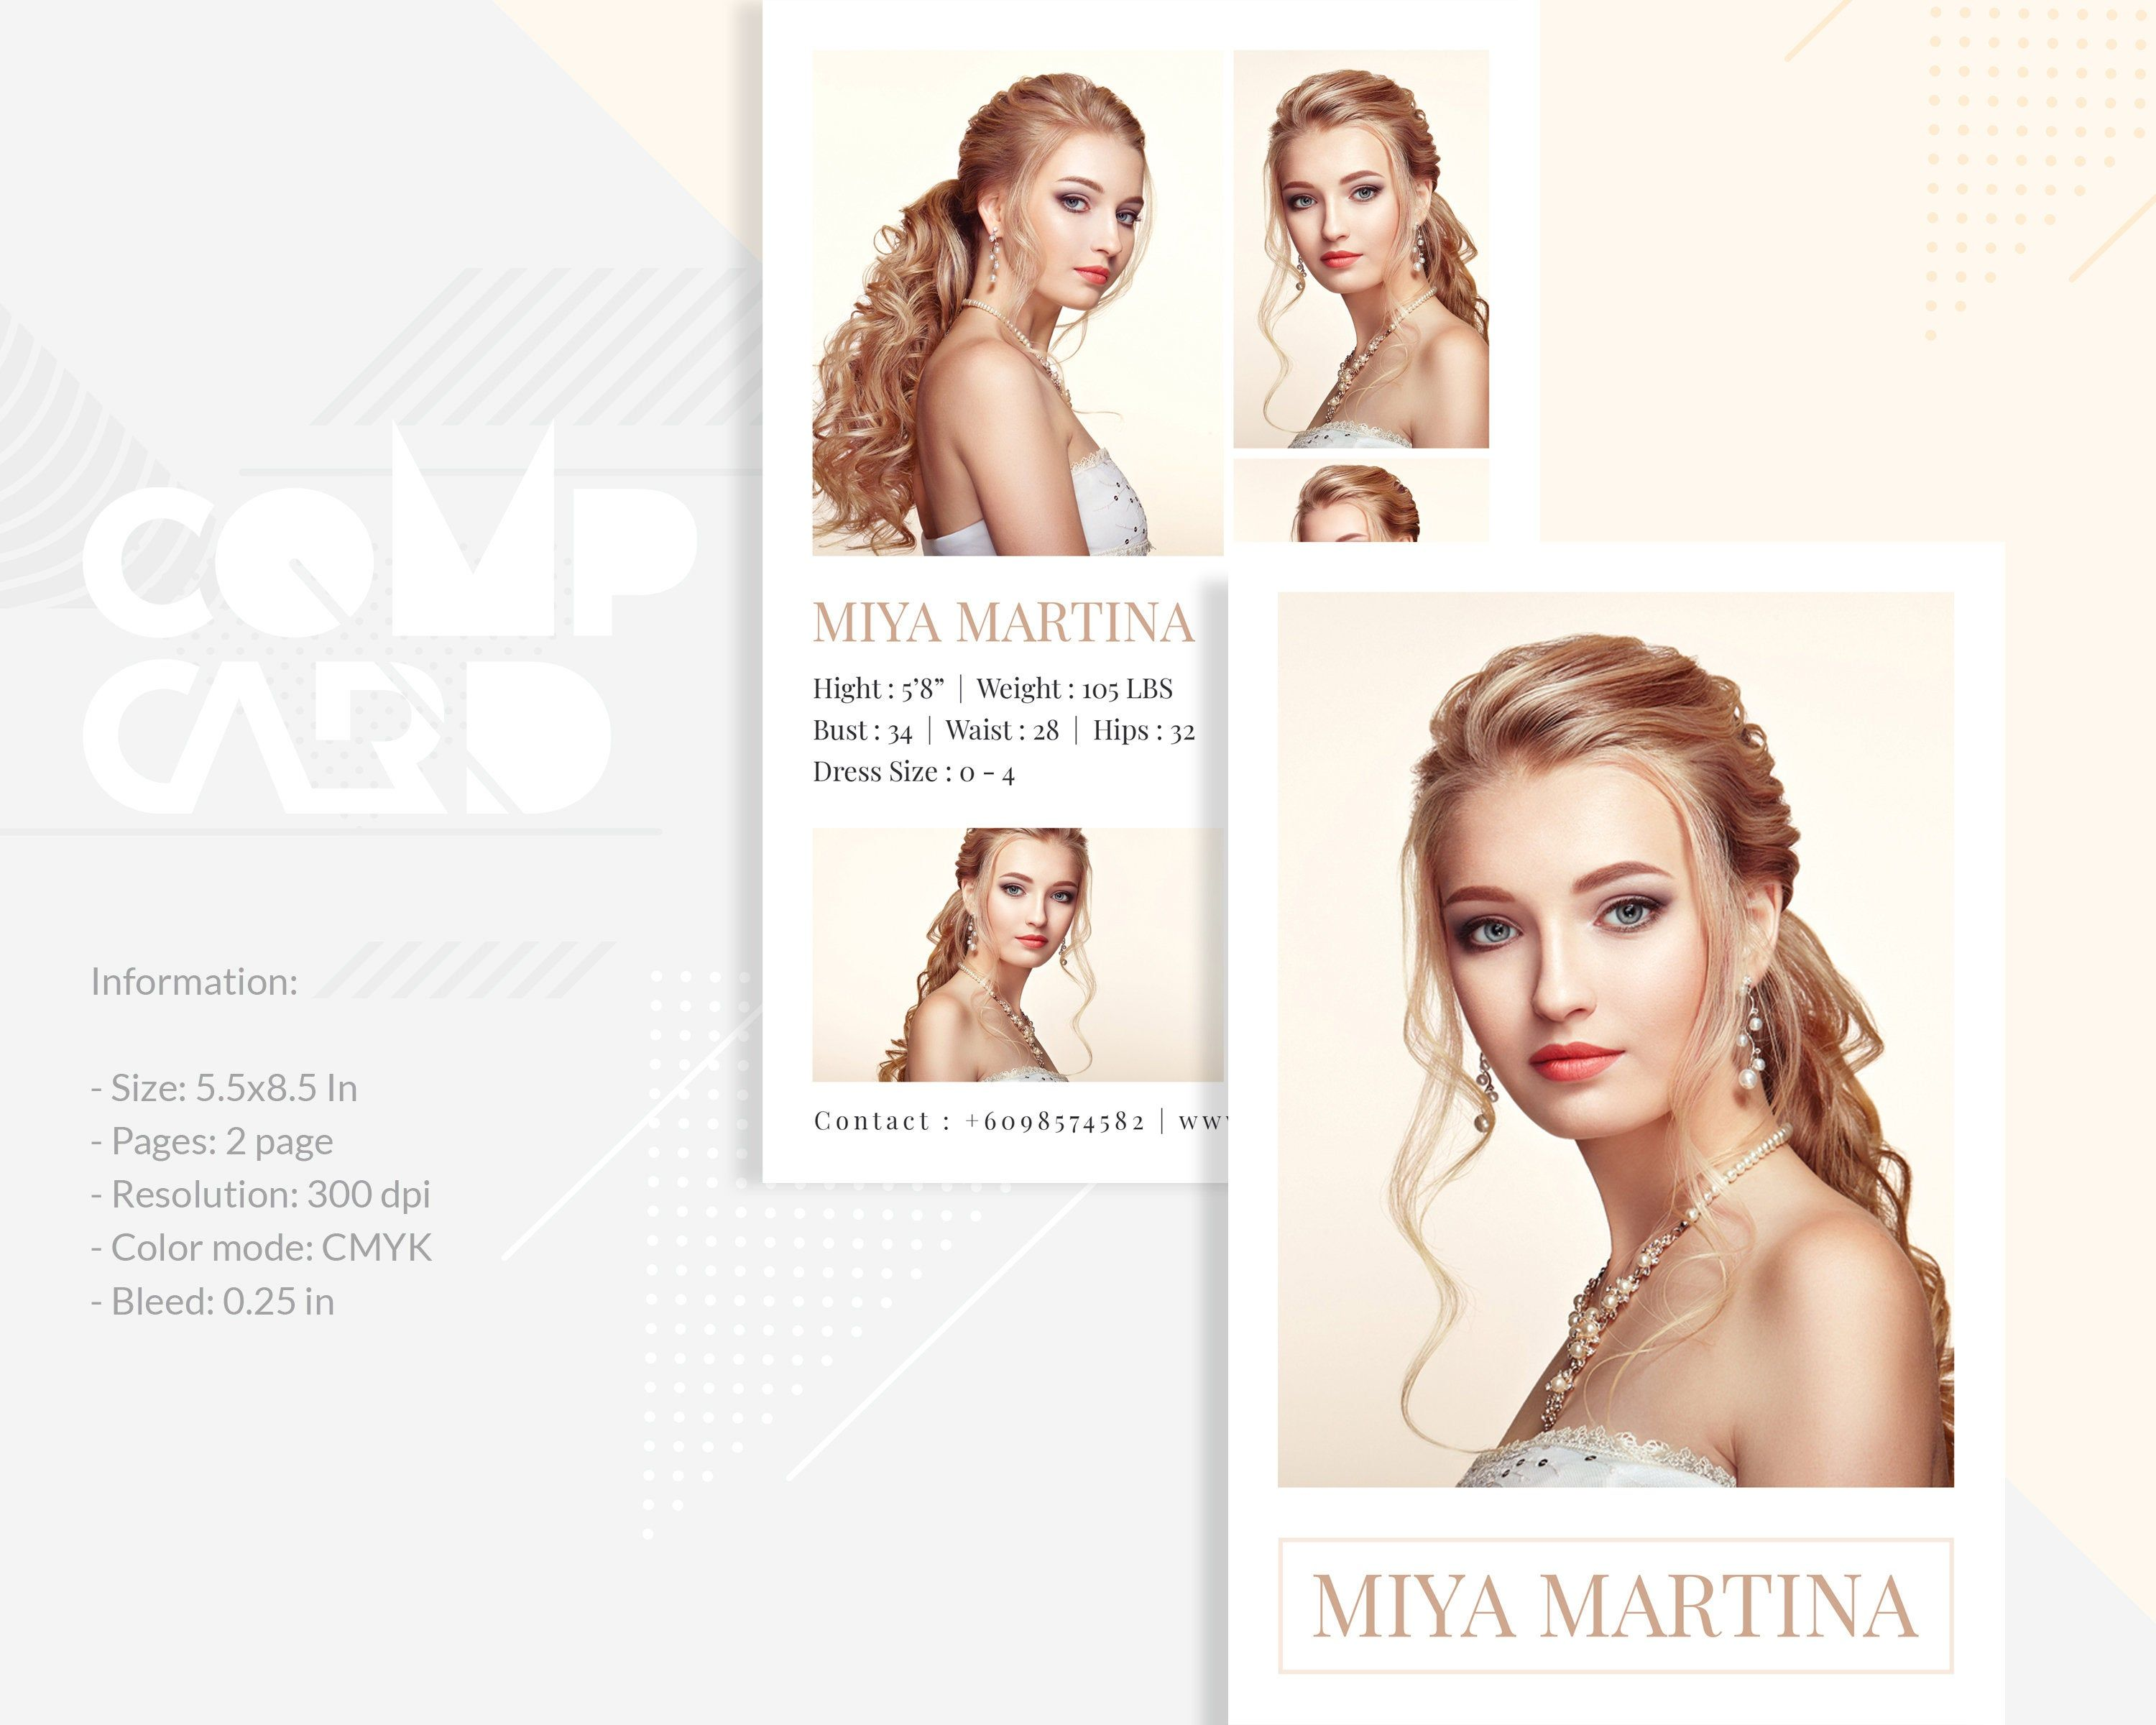 Modeling Comp Card Fashion Model Comp Card Template Photoshop Elements And Ms Word Template Insta Model Comp Card Card Template Funeral Program Template